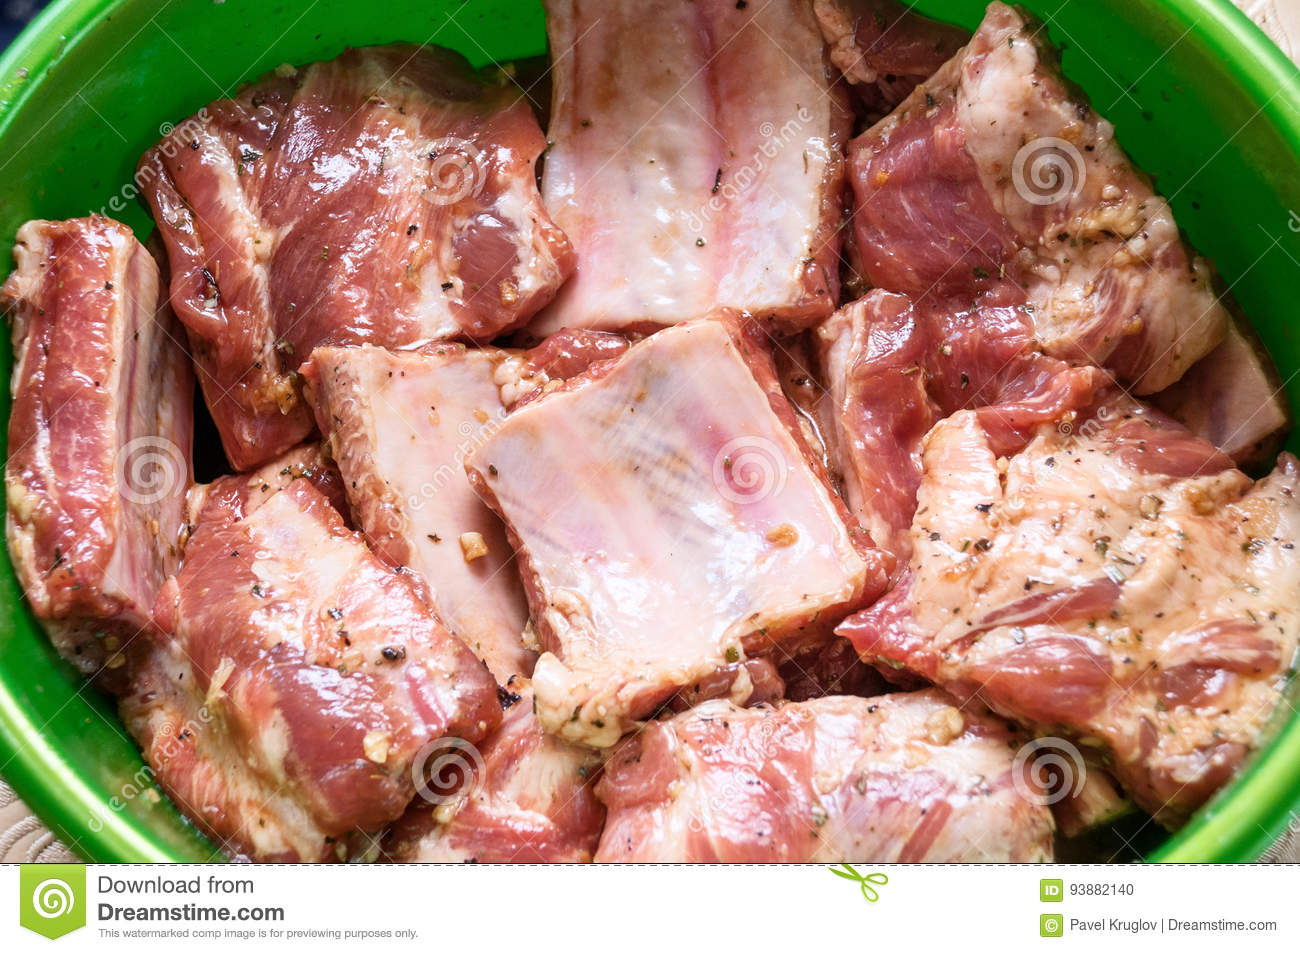 Can Cats Eat Marinated Meat